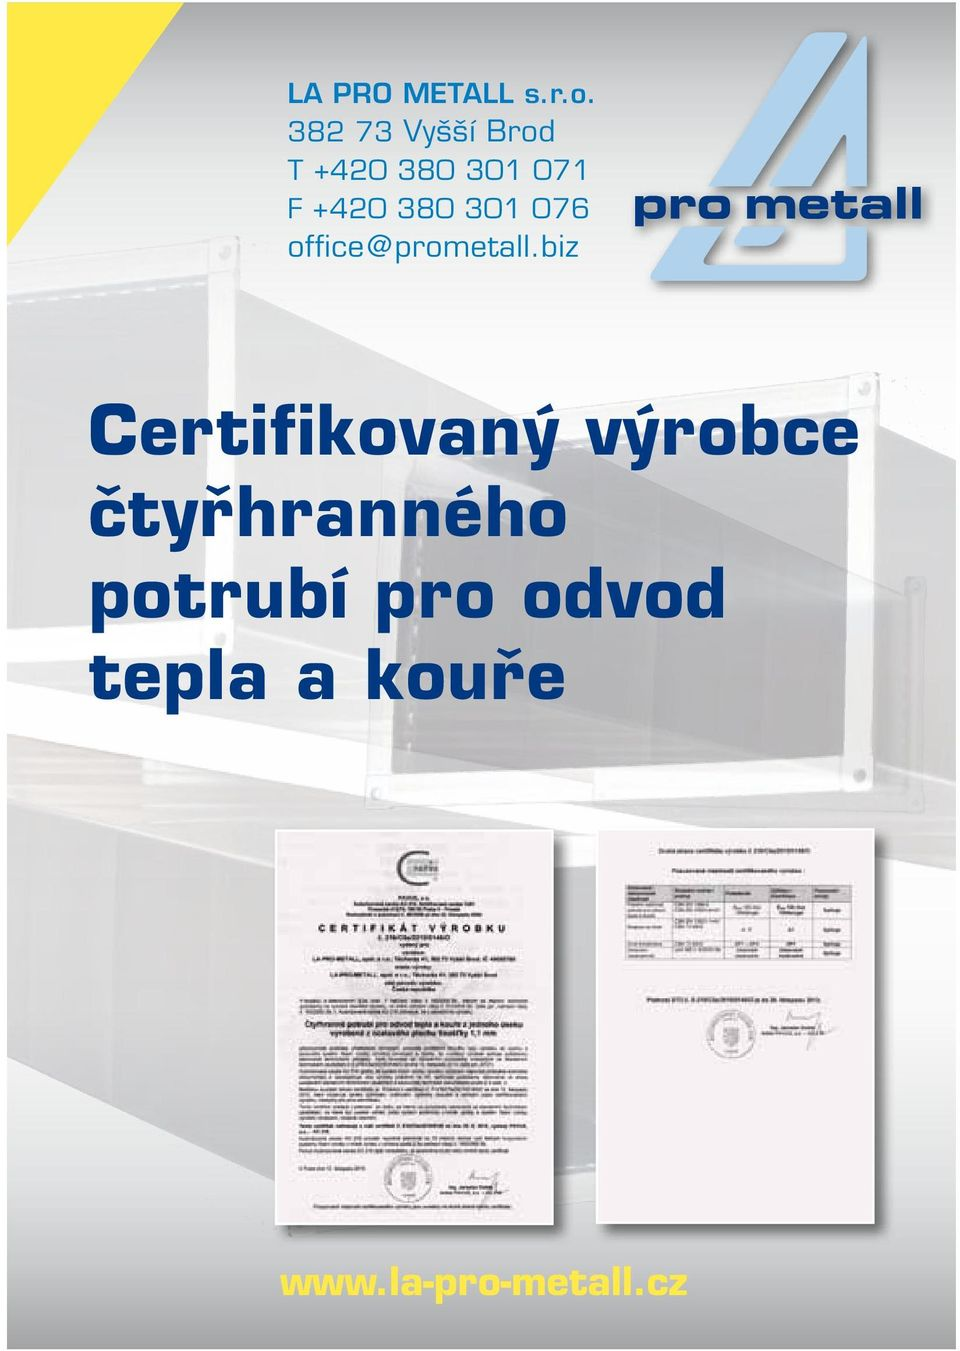 380 301 076 office@prometall.